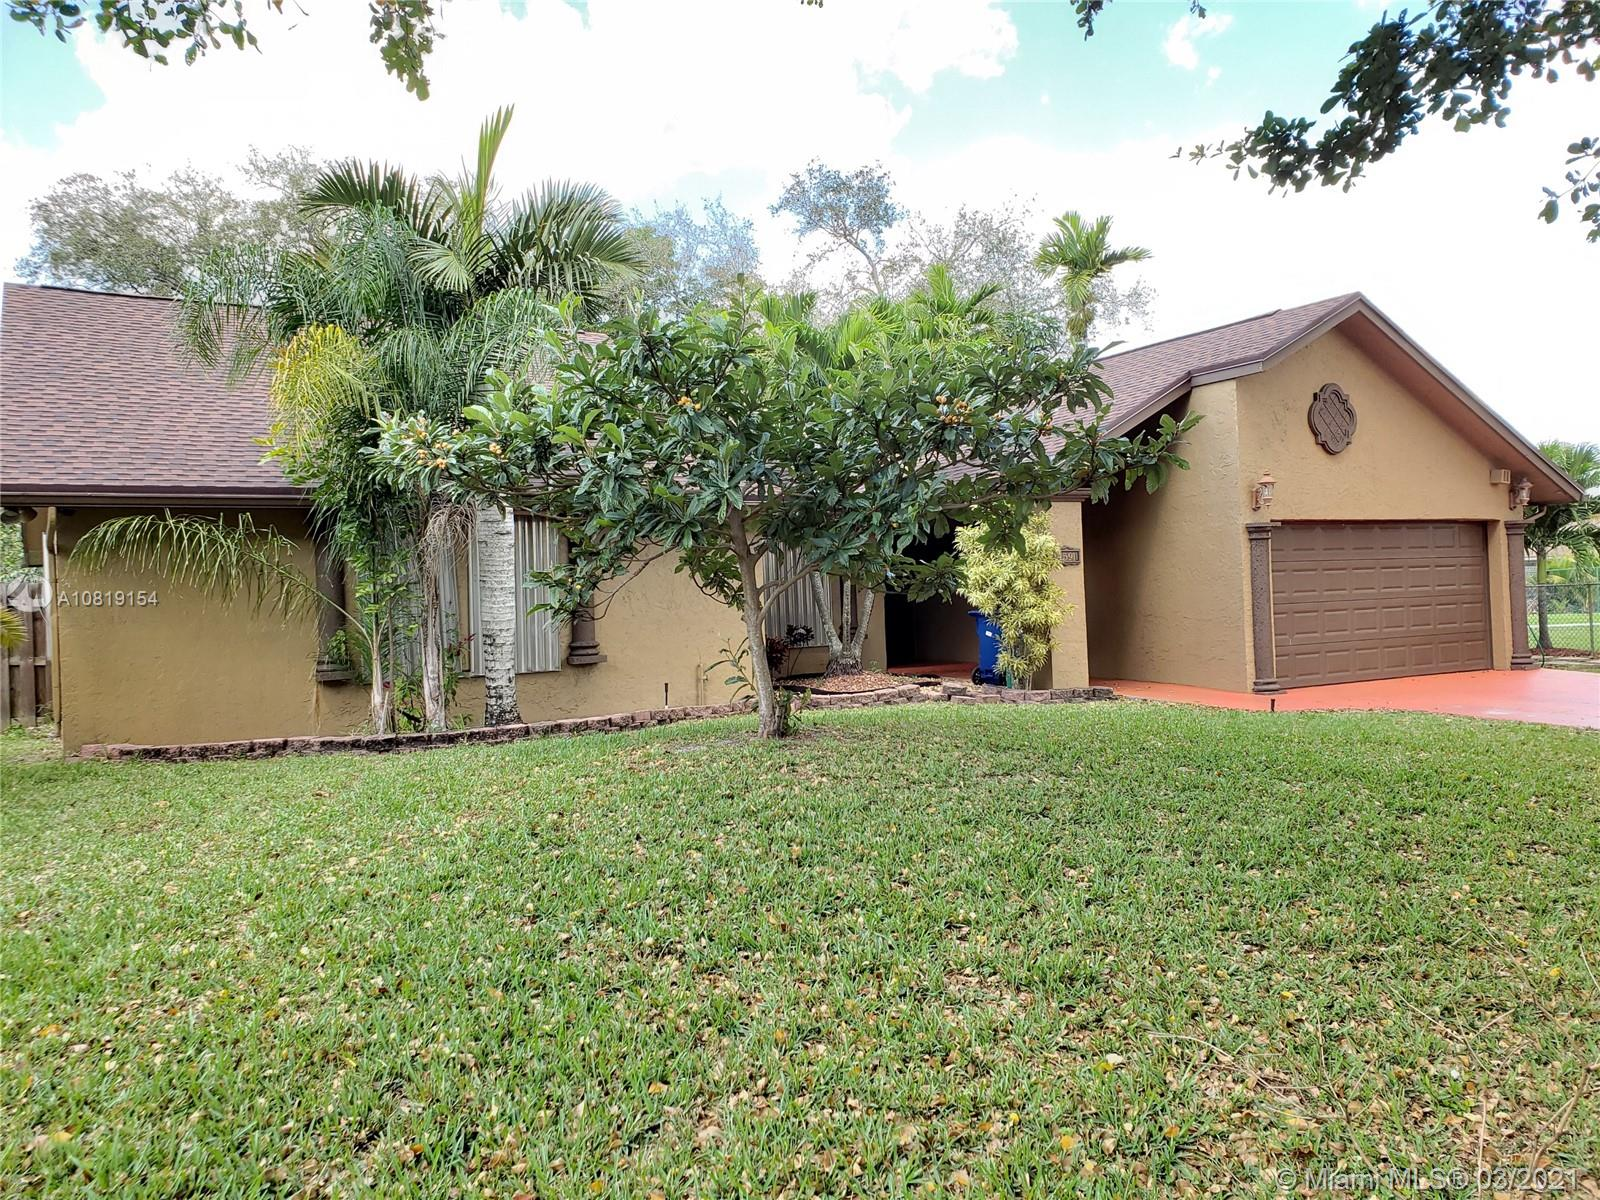 Spacious Single-family corner house 3 bed 2 bath 2 car garage with sparkling screened pool in THE ESTATES OF INVERRARY. Brand New roof Dec. 2018, AC & water heater 3 years old, entry foyer, formal dining room, sunken living room, dining area in kitchen with a view of the pool area and snack bar in kitchen, family room, living room, and master bedroom have french doors that lead to patio/pool area, great for entertaining, plus vaulted ceilings, accordion/panel shutter, walk-in closet, 14,127 SF lot, walk to kids playground. Great curve appeal near everything, close to turnpike, major roadways, markets, restaurants, movie theater. Your buyers will love this home, beautiful floor plan fit for the perfect family to enjoy, bring buyers ready for purchase. easy to show, Extended driveway,